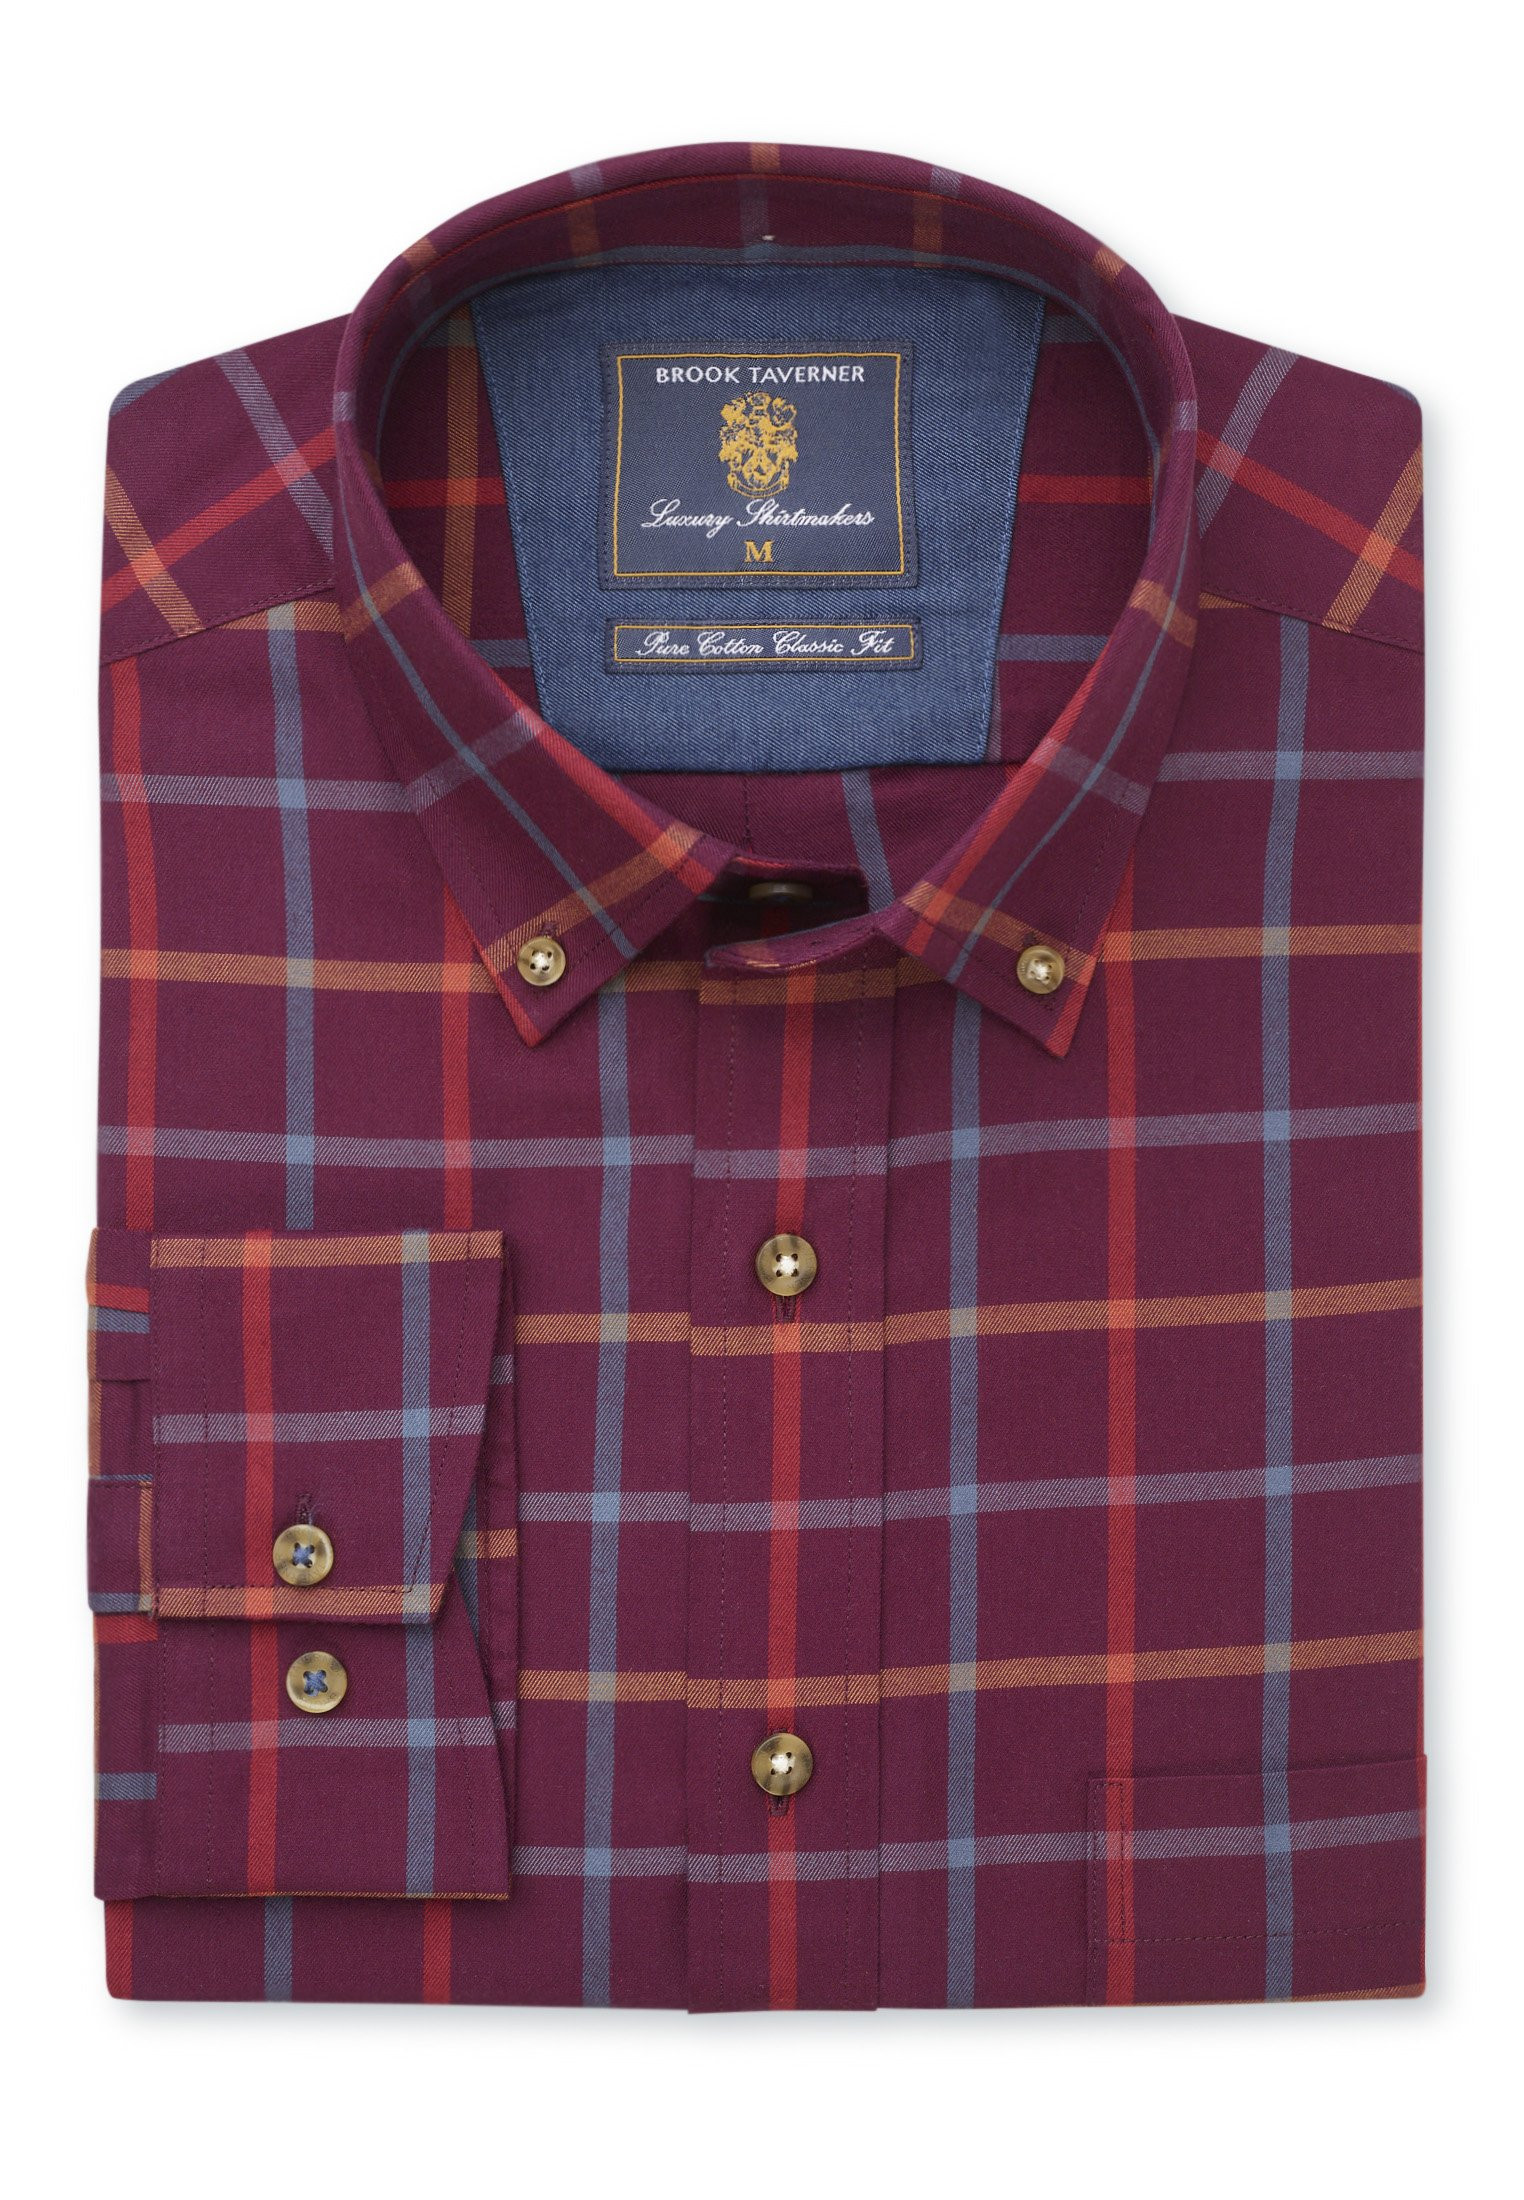 Classic Fit Cashemere Touch Burgundy With Blue, Red and Mustard Check Shirt